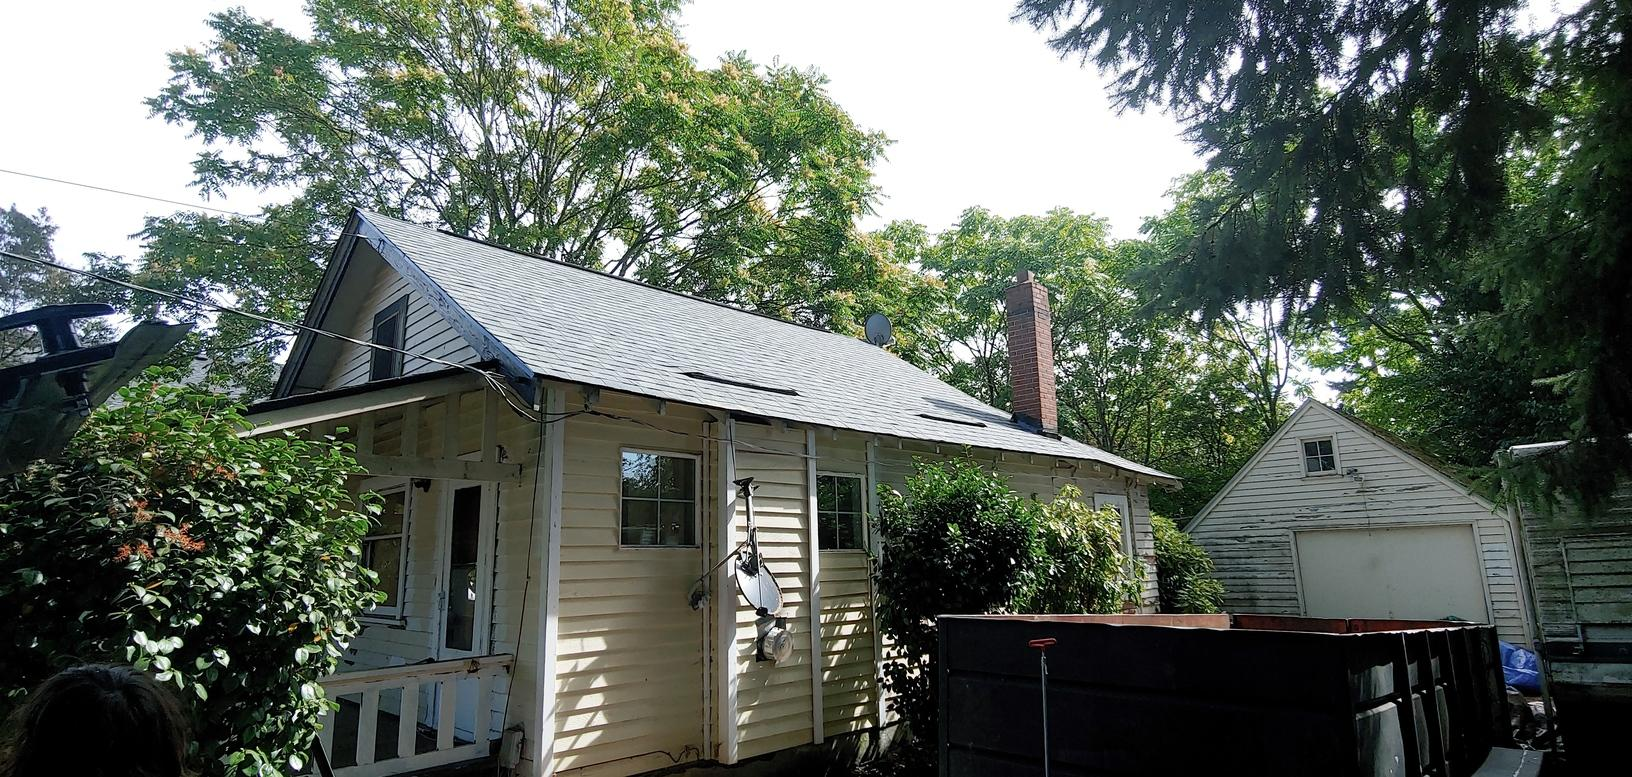 Owens Corning Roofing Replacement in Portland, OR - After Photo